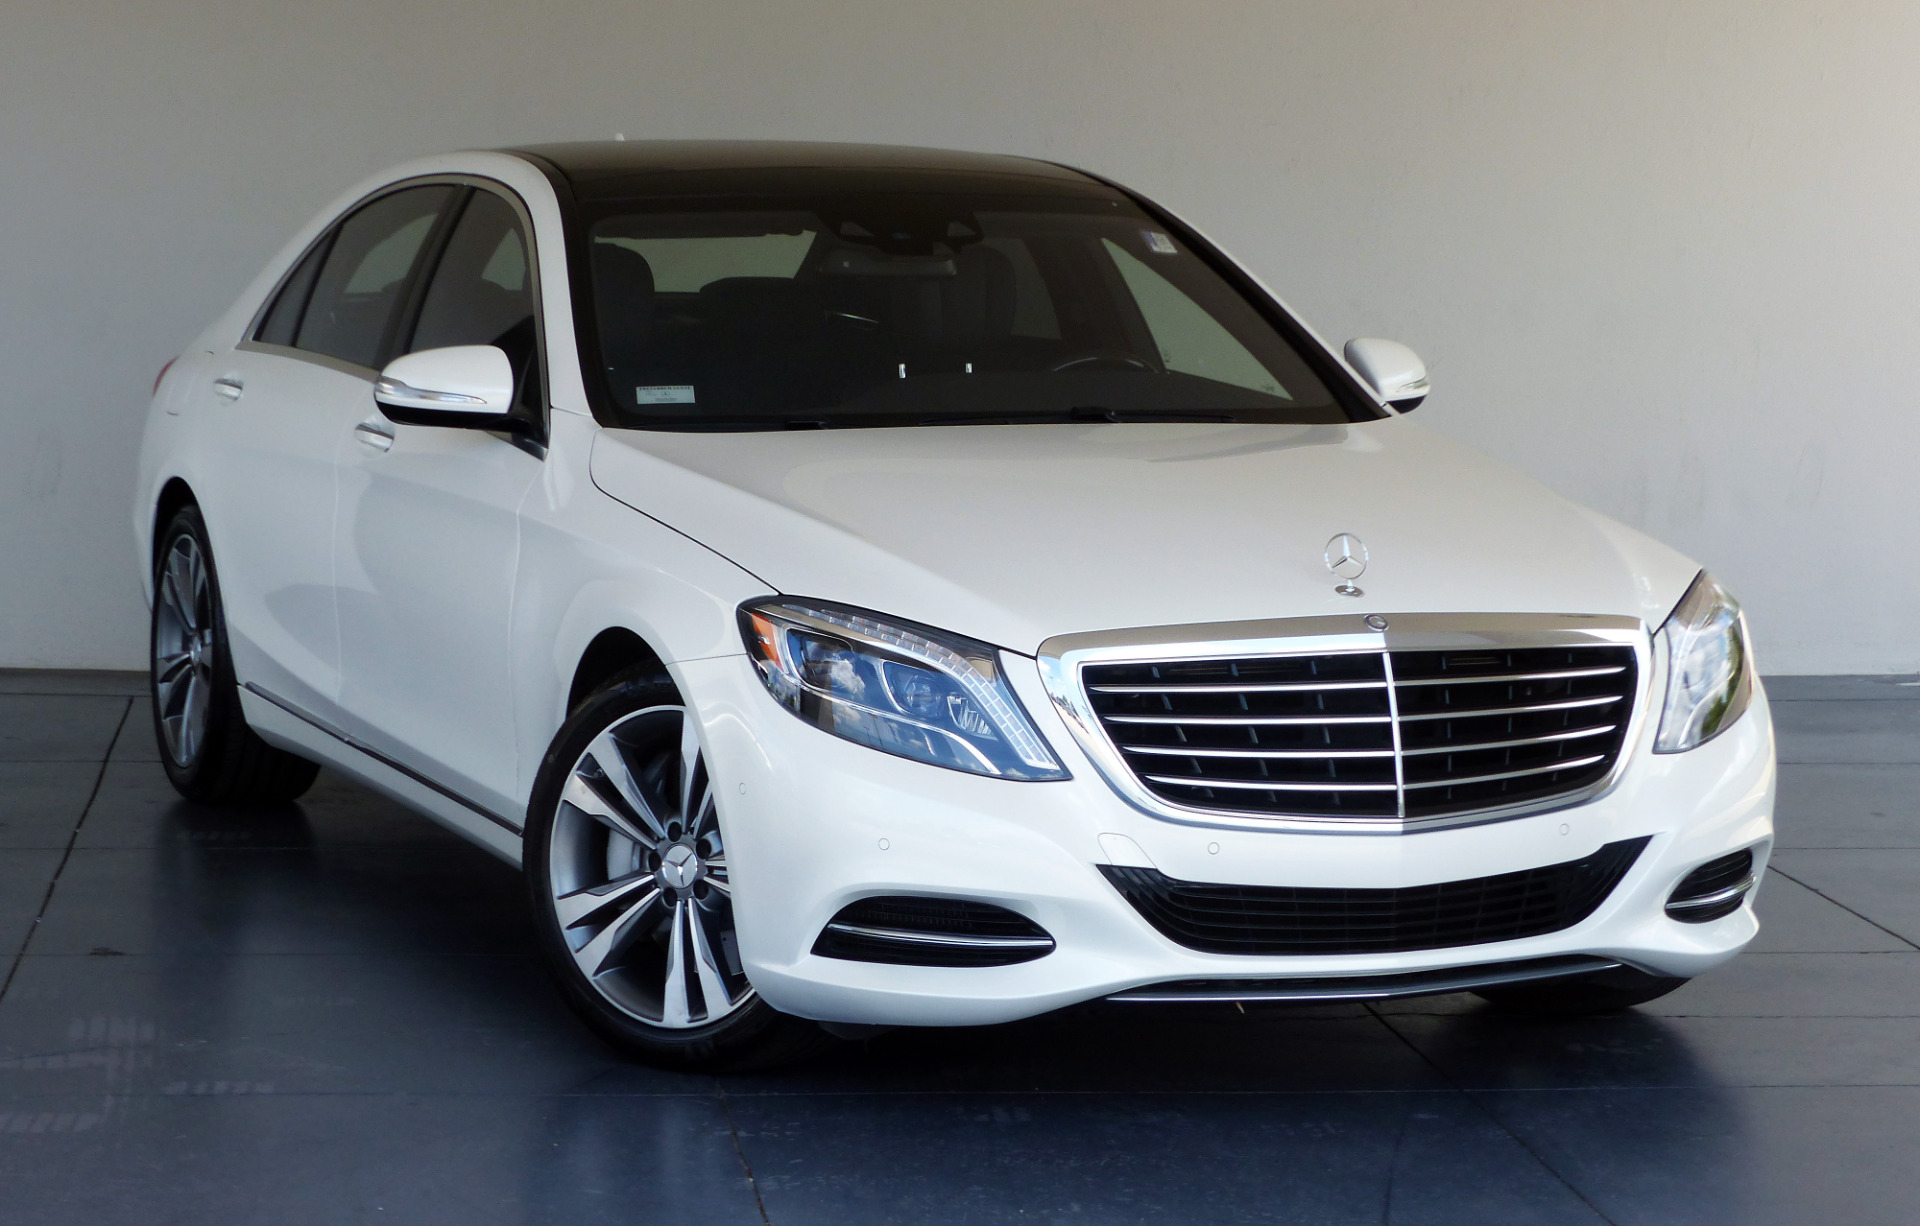 used 2017 mercedes benz s class s550 marietta ga. Black Bedroom Furniture Sets. Home Design Ideas